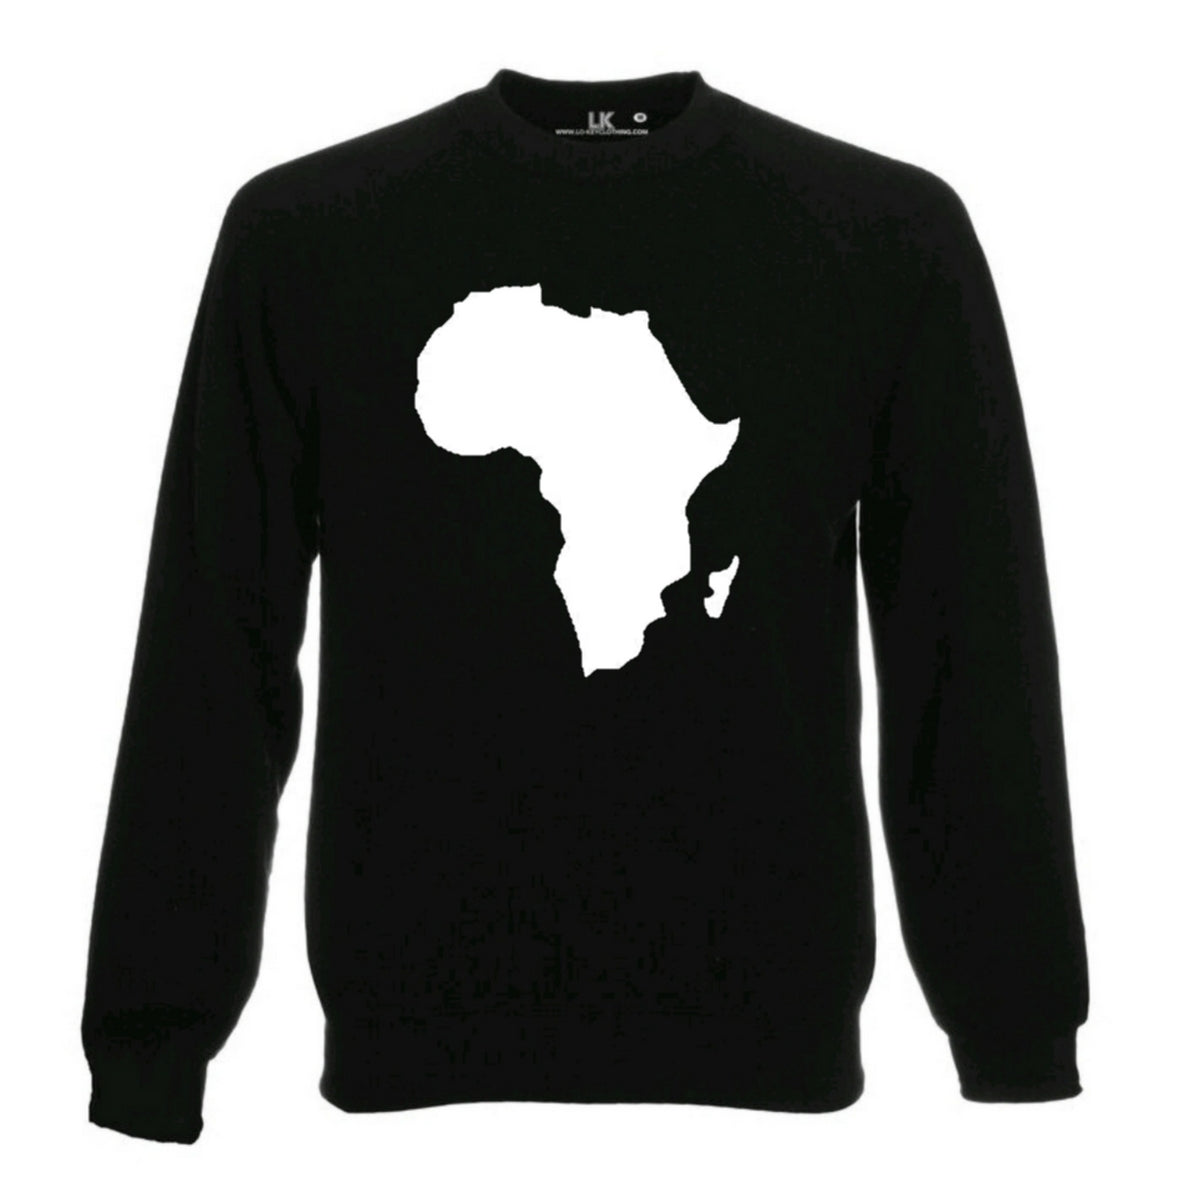 Africa Sweatshirt Lo-Key Clothing